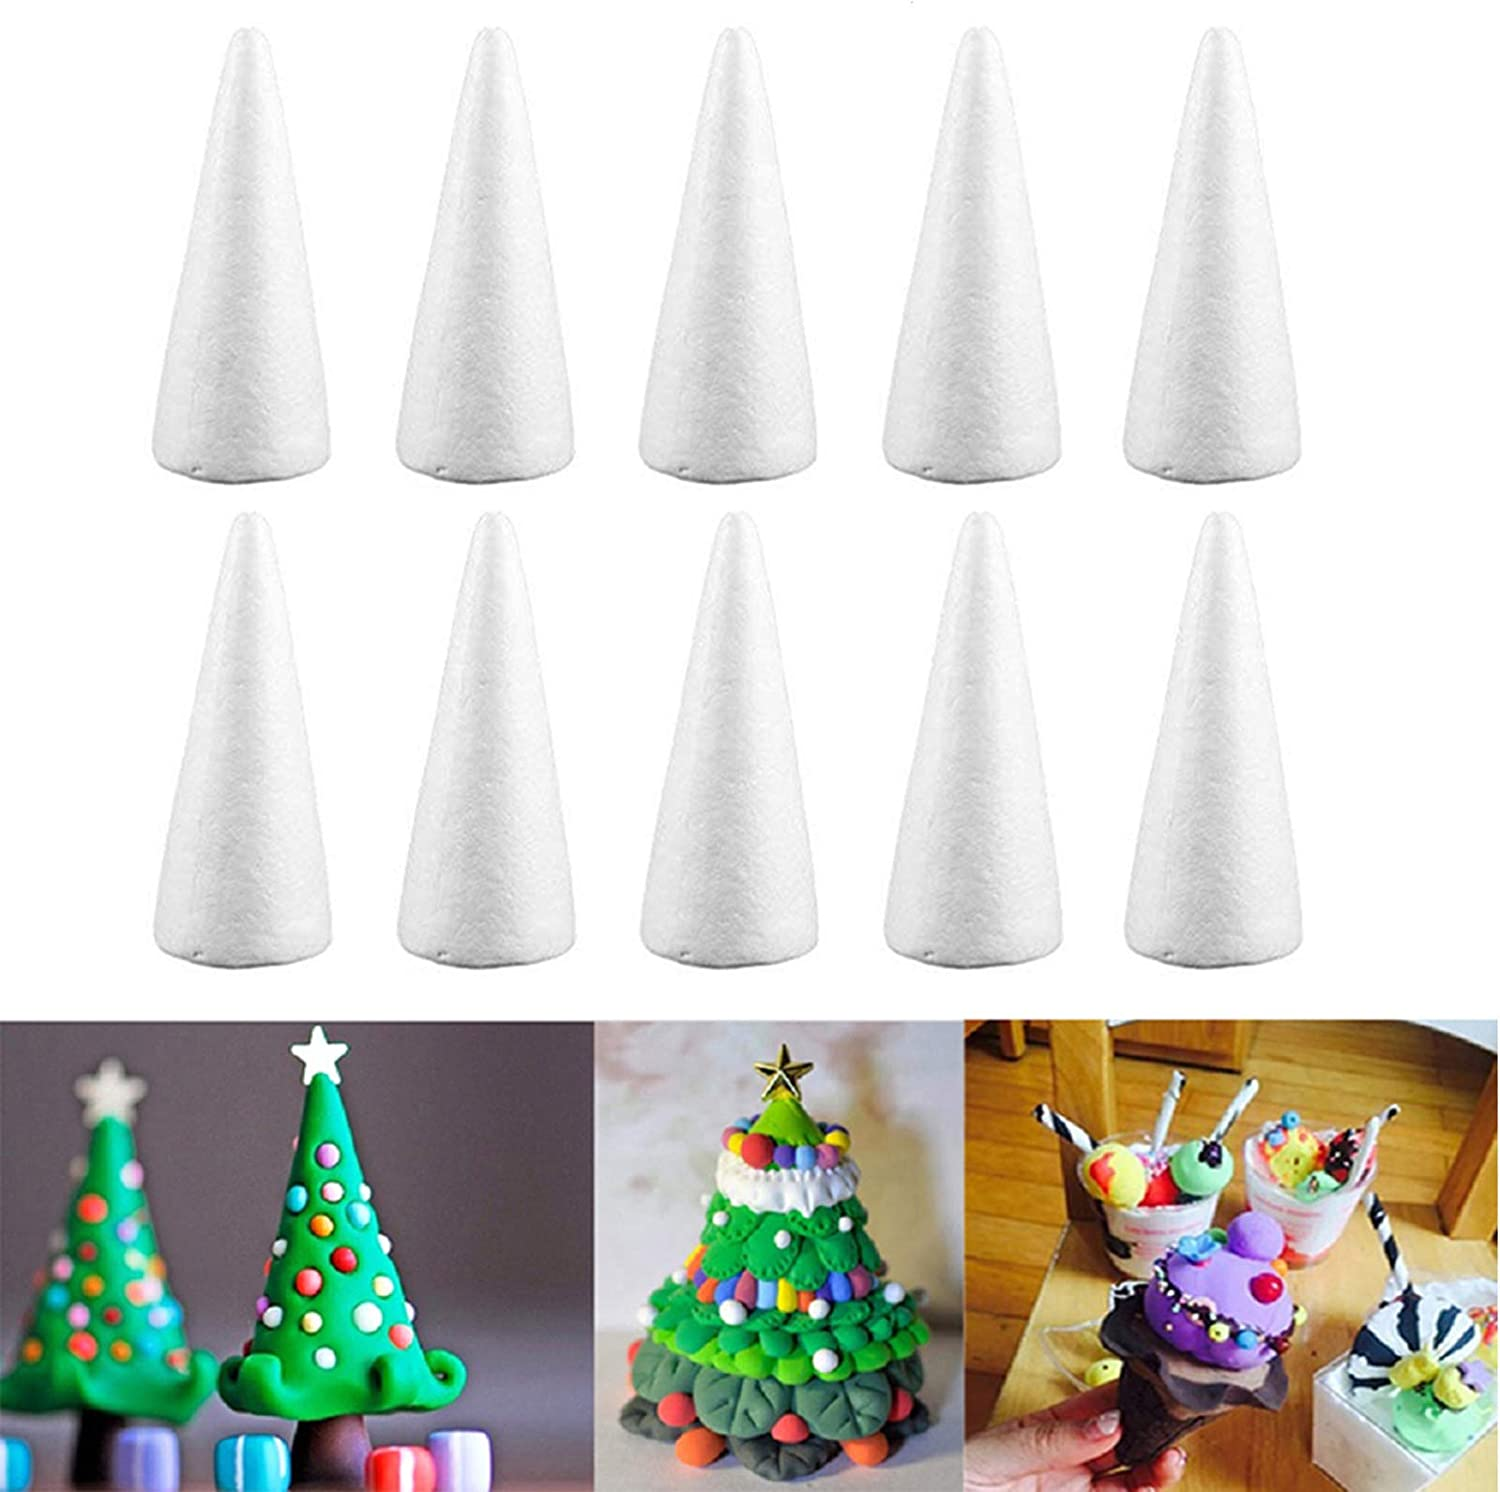 Table Centerpiece Cone Shape Foam 16 Pieces White Foam Cones Arts and Crafts Supplies for Home DIY Handmade Crafts Projects Christmas Tree